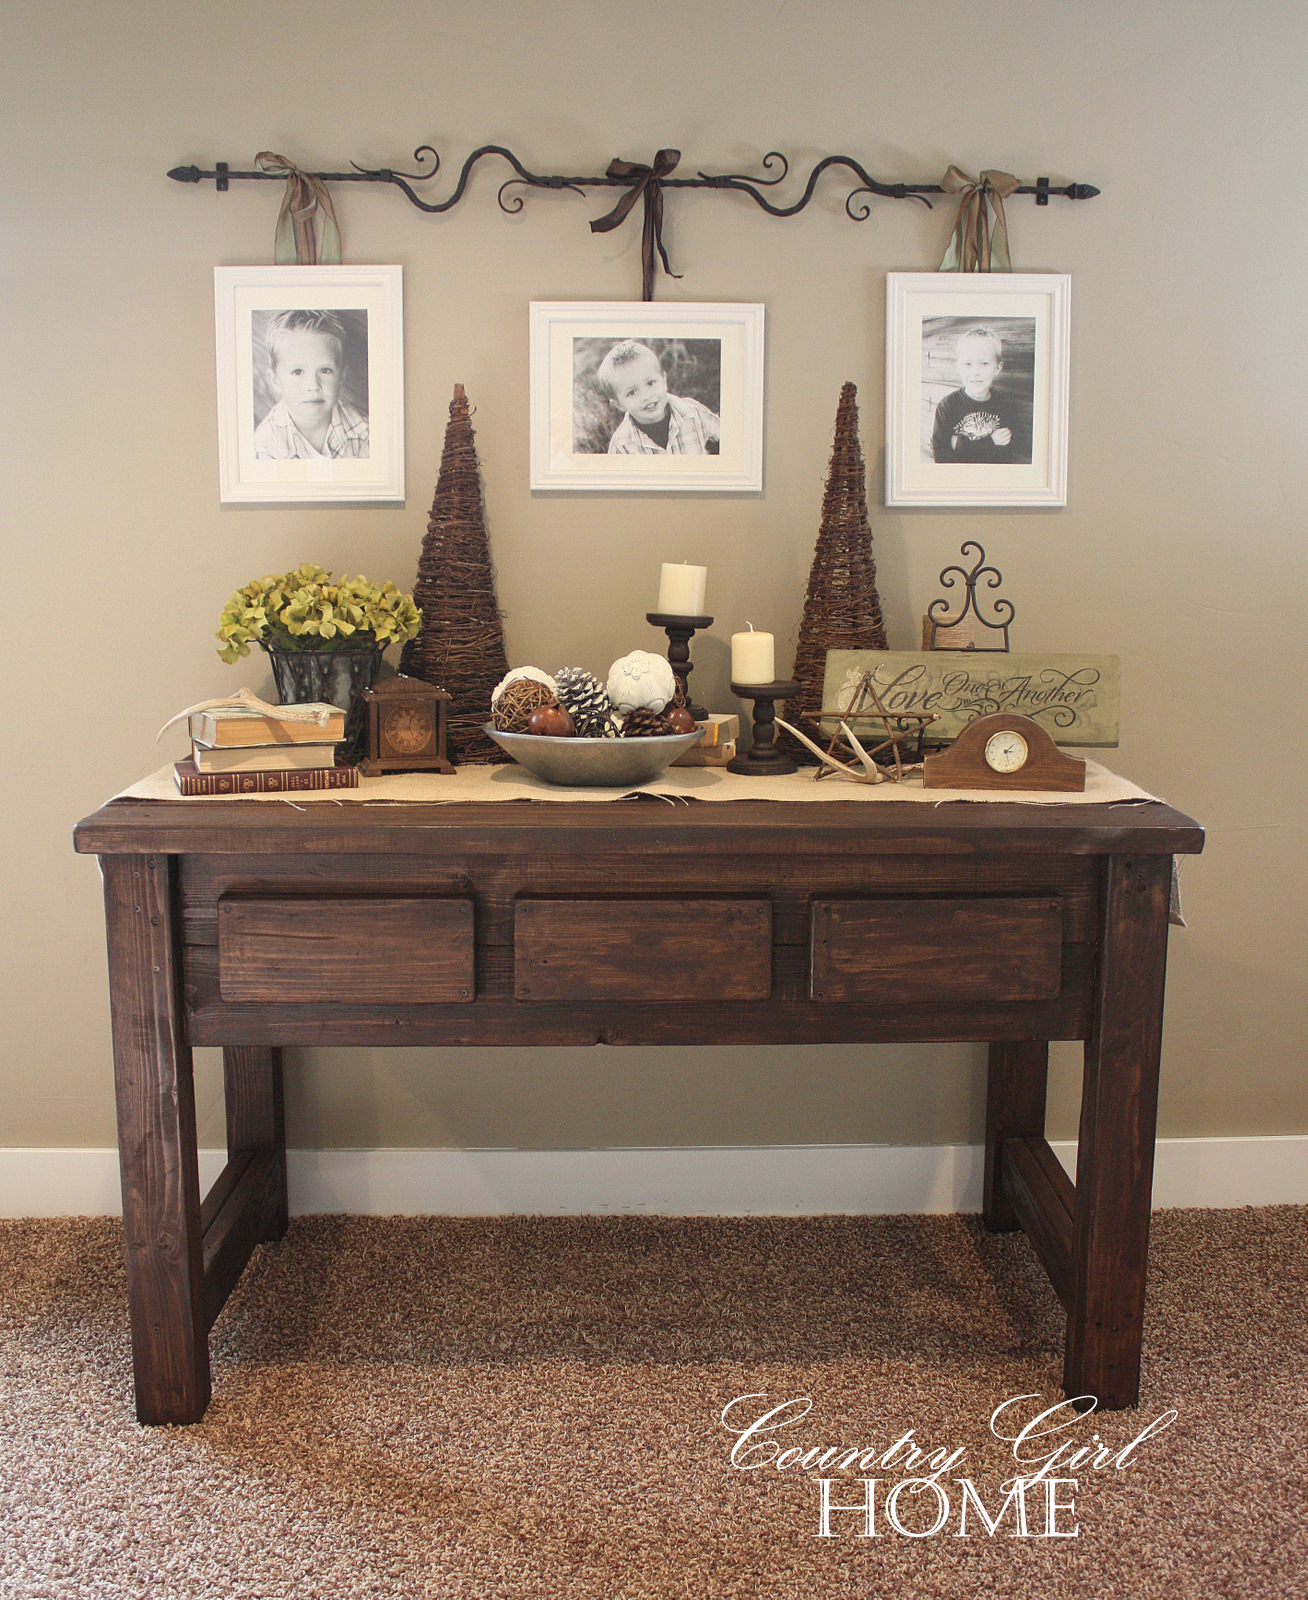 Living Room Sofa Table Decorating Ideas sofa table edge christmas dec ideas pinterest entryway decor